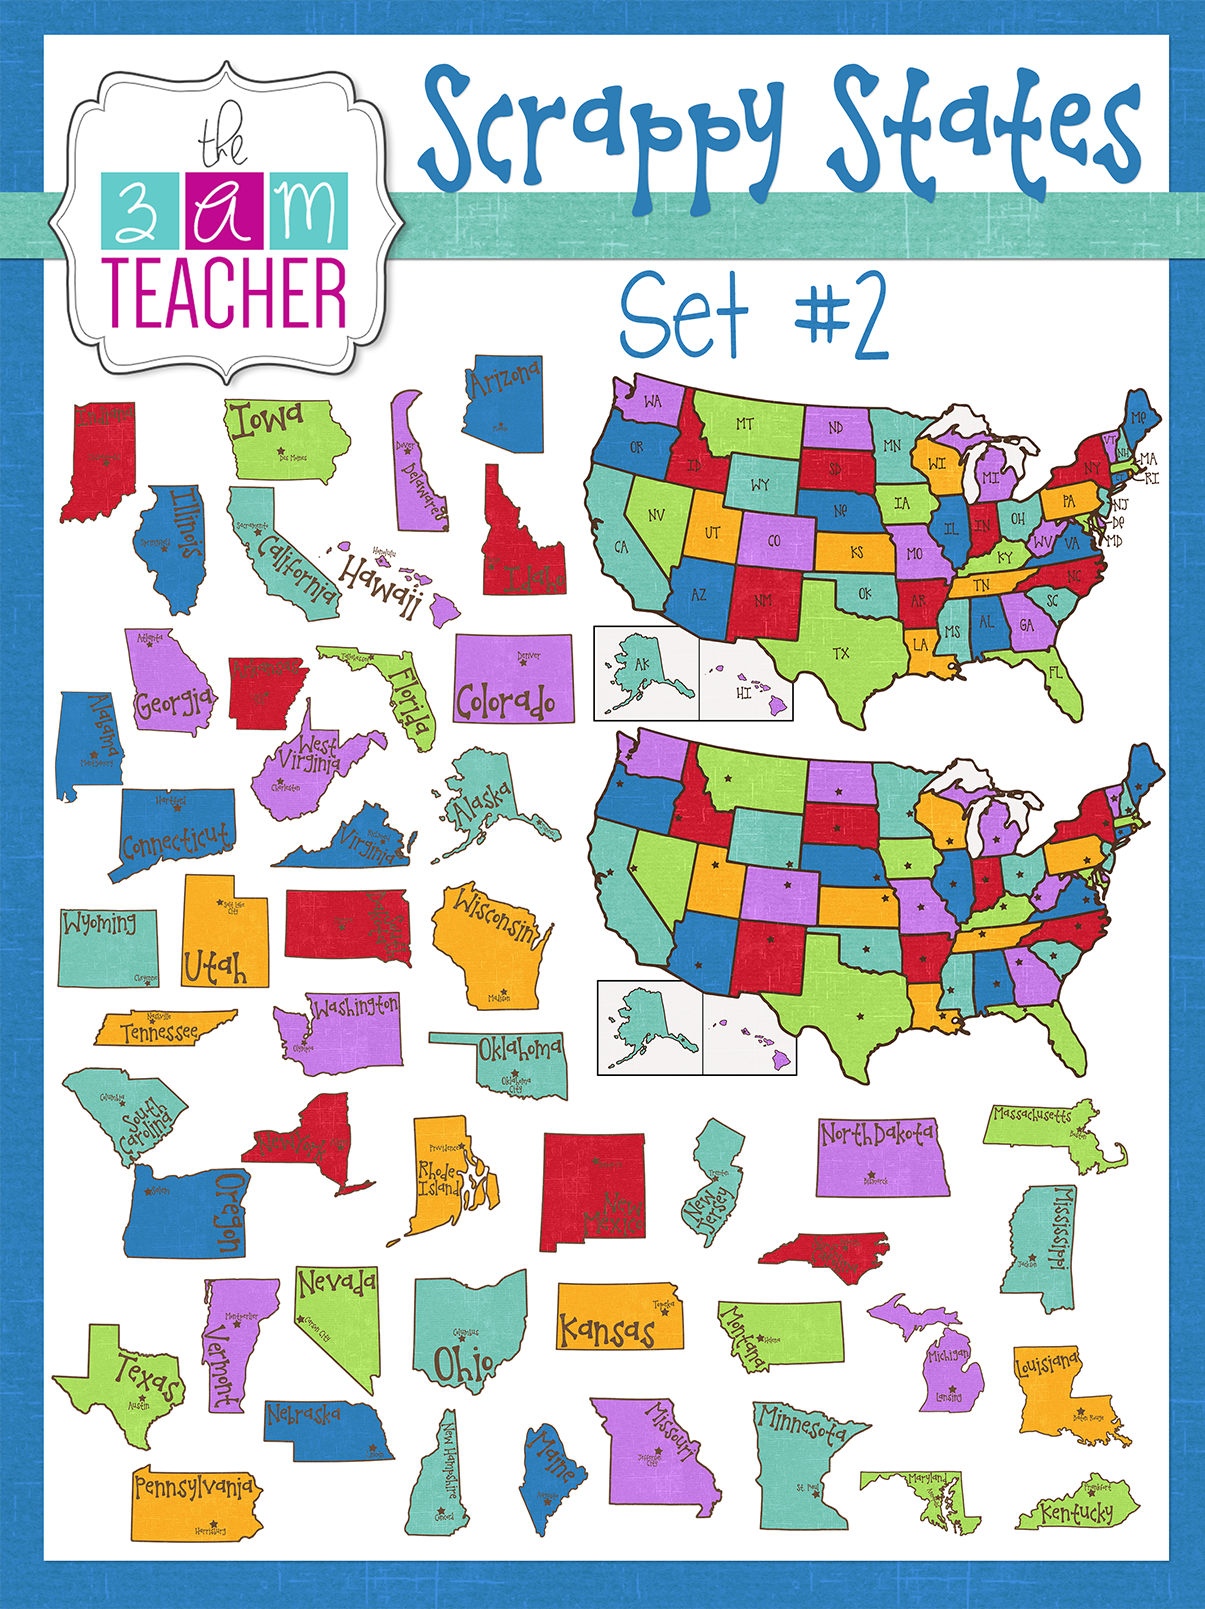 Us states clipart filled with books clip art library stock 10+ bilder om Geography: United States på Pinterest | Clip art ... clip art library stock